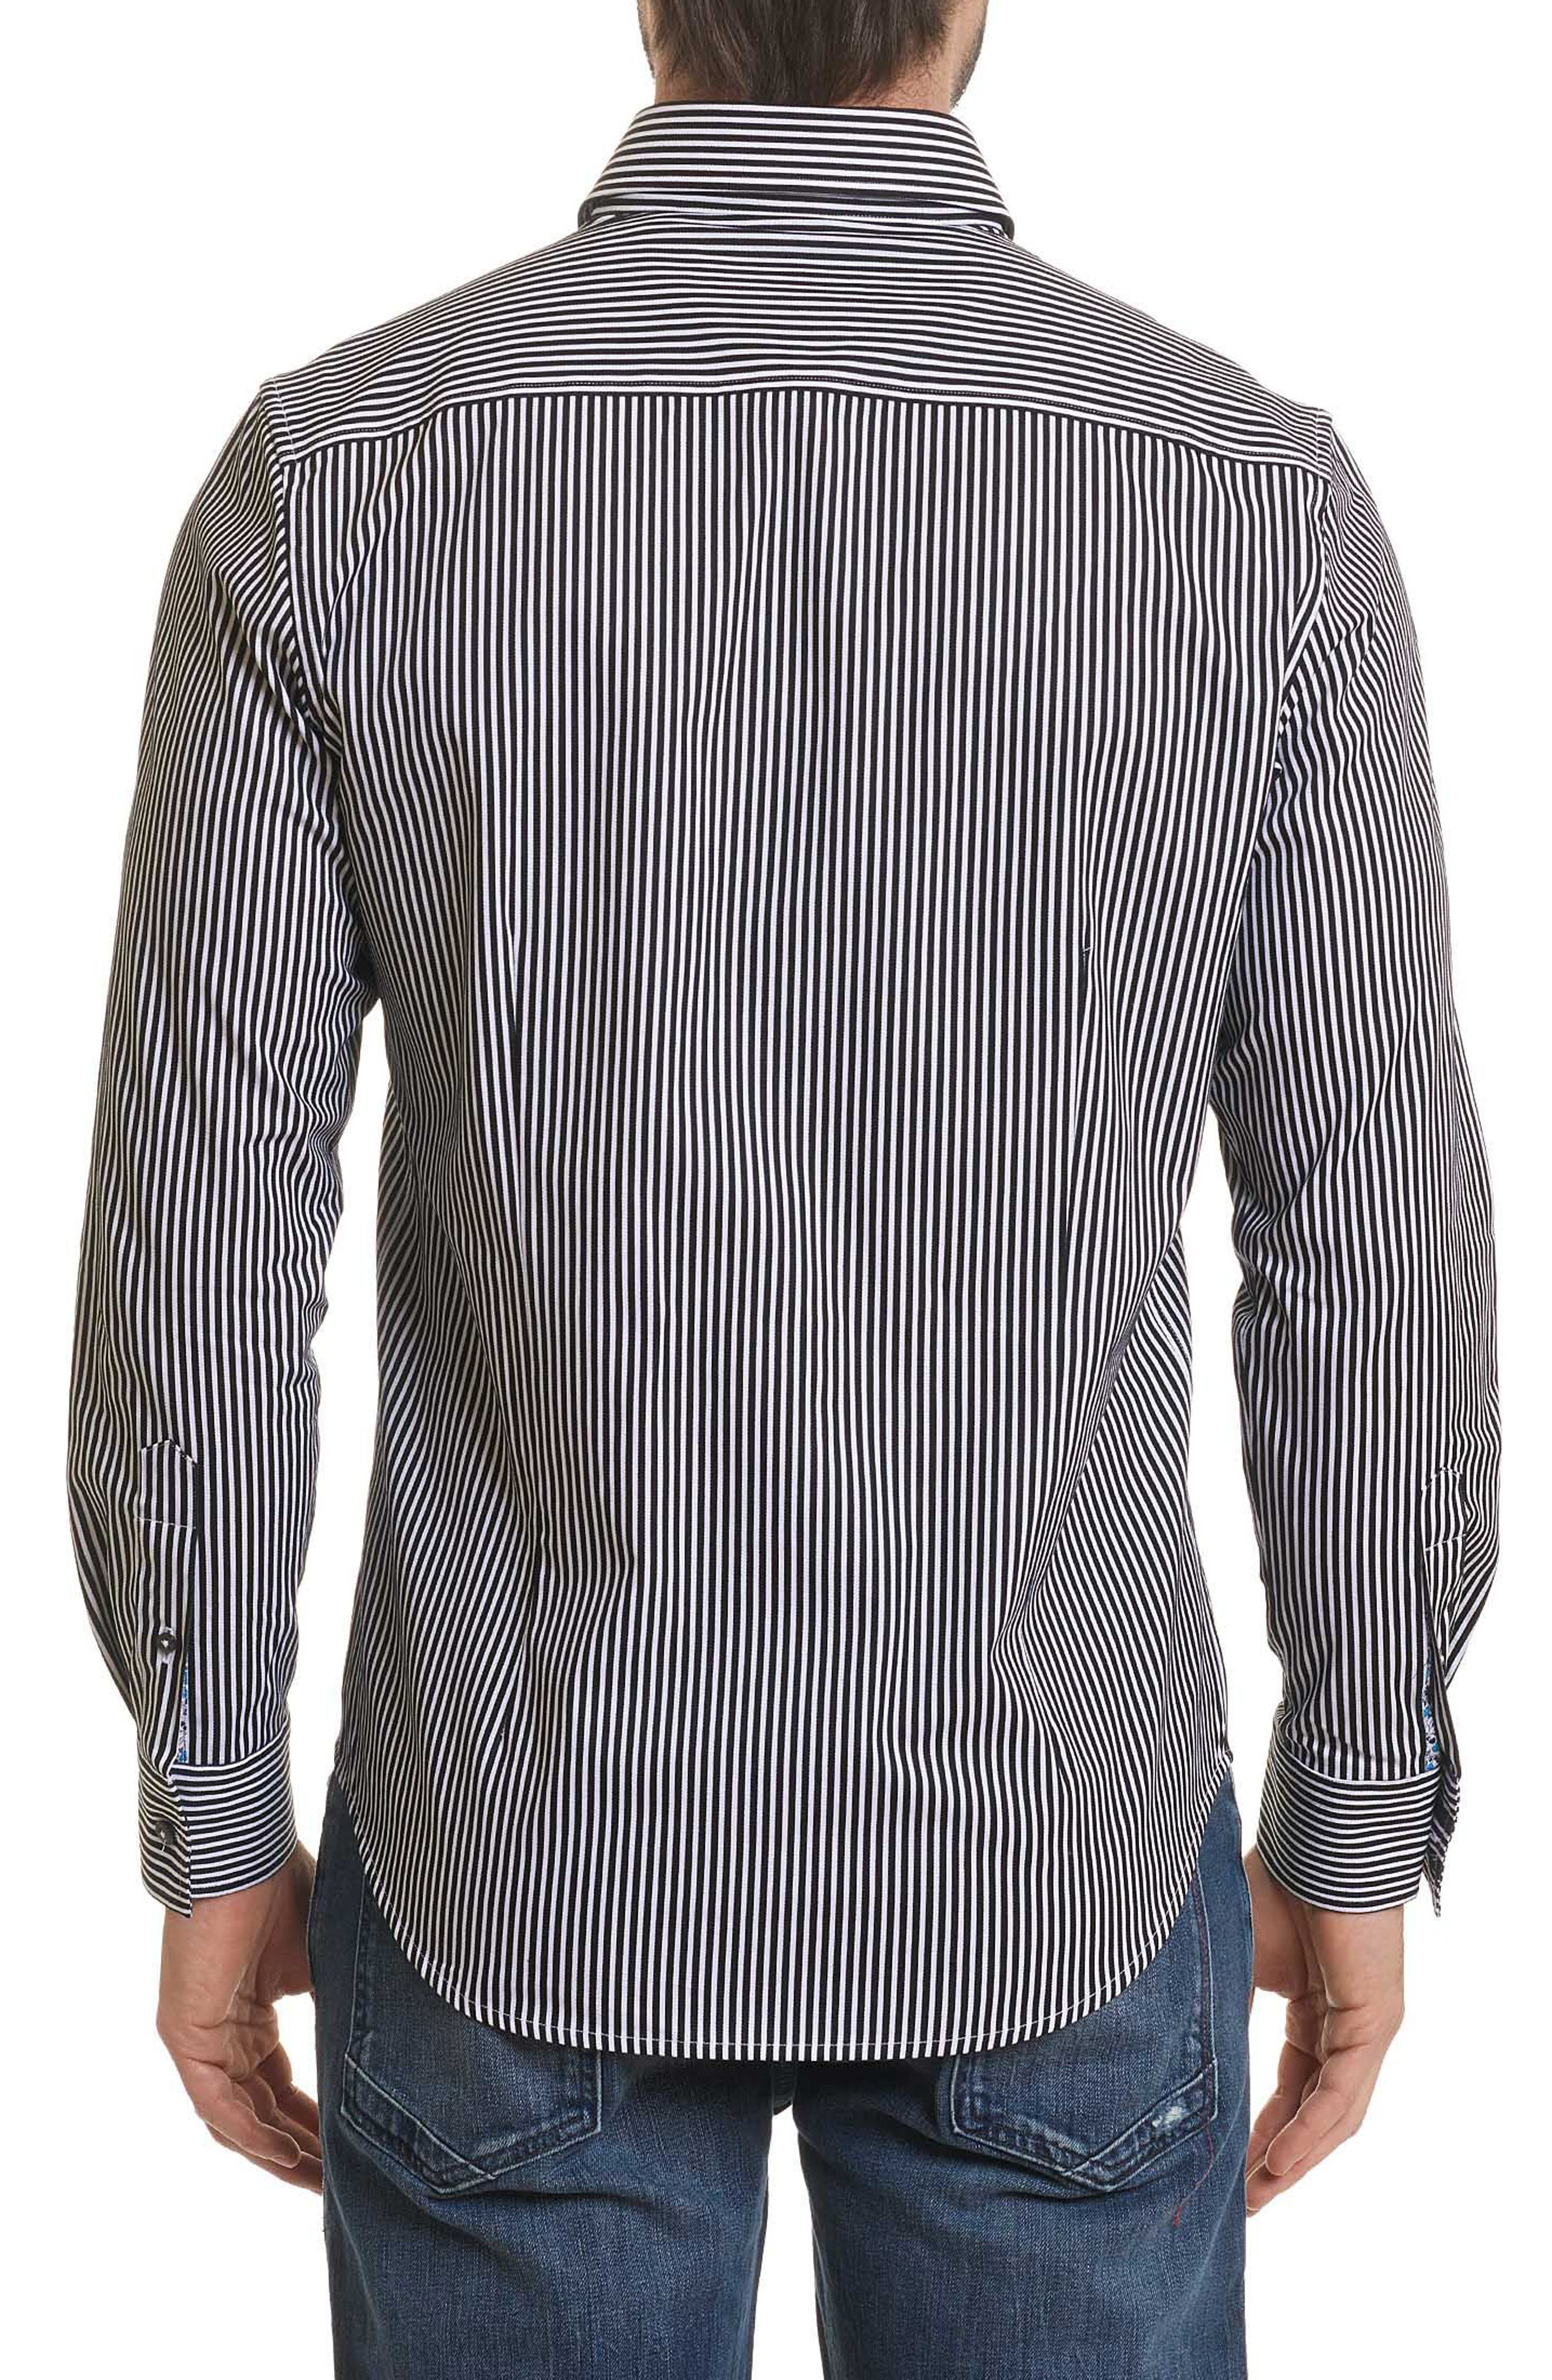 Luther Classic Fit Stripe Sport Shirt,                             Alternate thumbnail 2, color,                             001